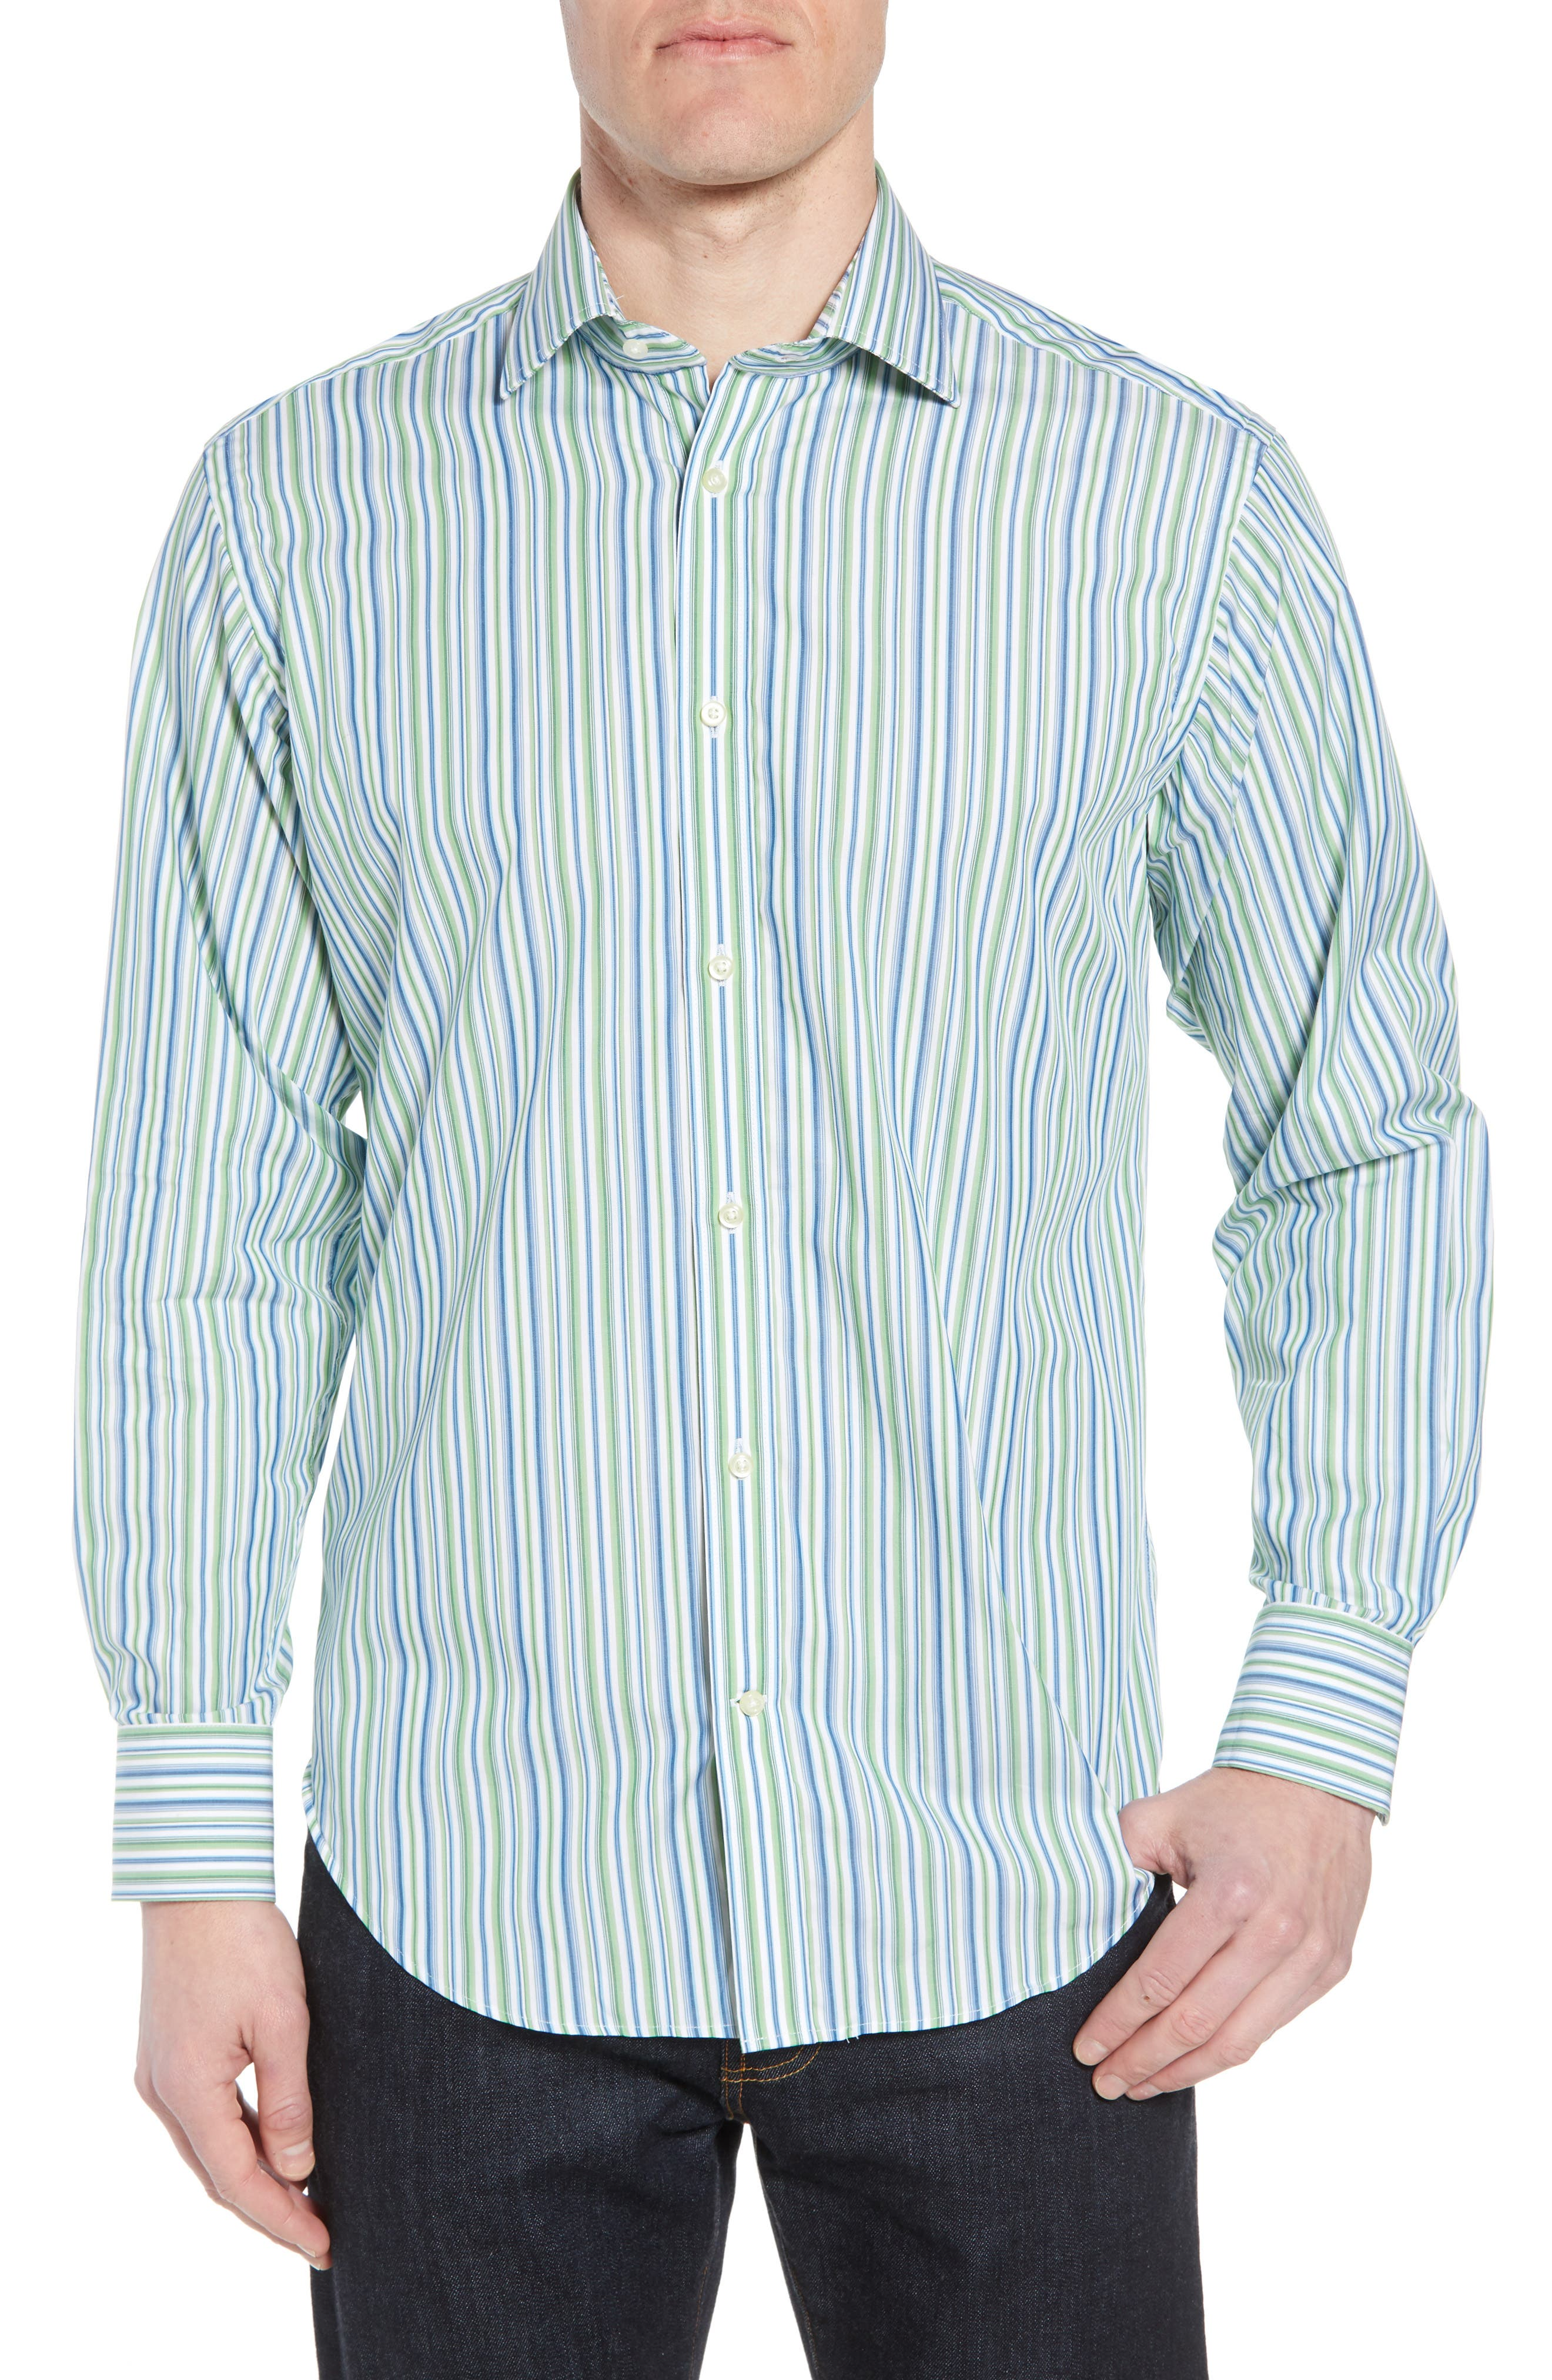 Regular Fit Stripe Sport Shirt,                         Main,                         color, Green